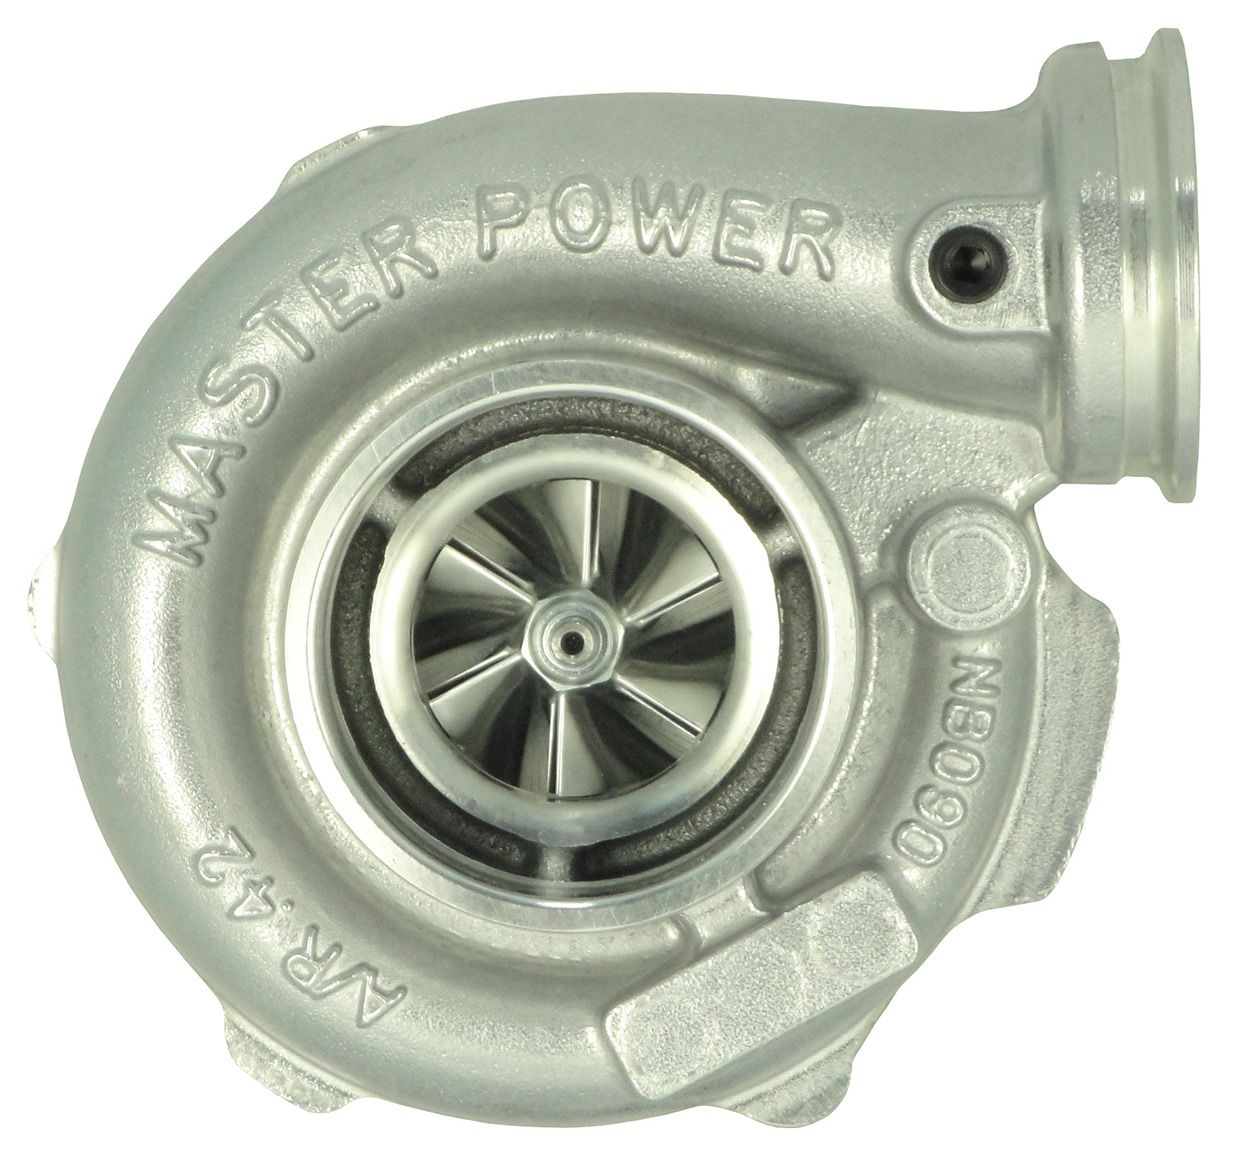 TURBINA MASTER POWER R4449-2 MP300c 44,05/49,5 145/360hp T1A-6,7 4F/M8